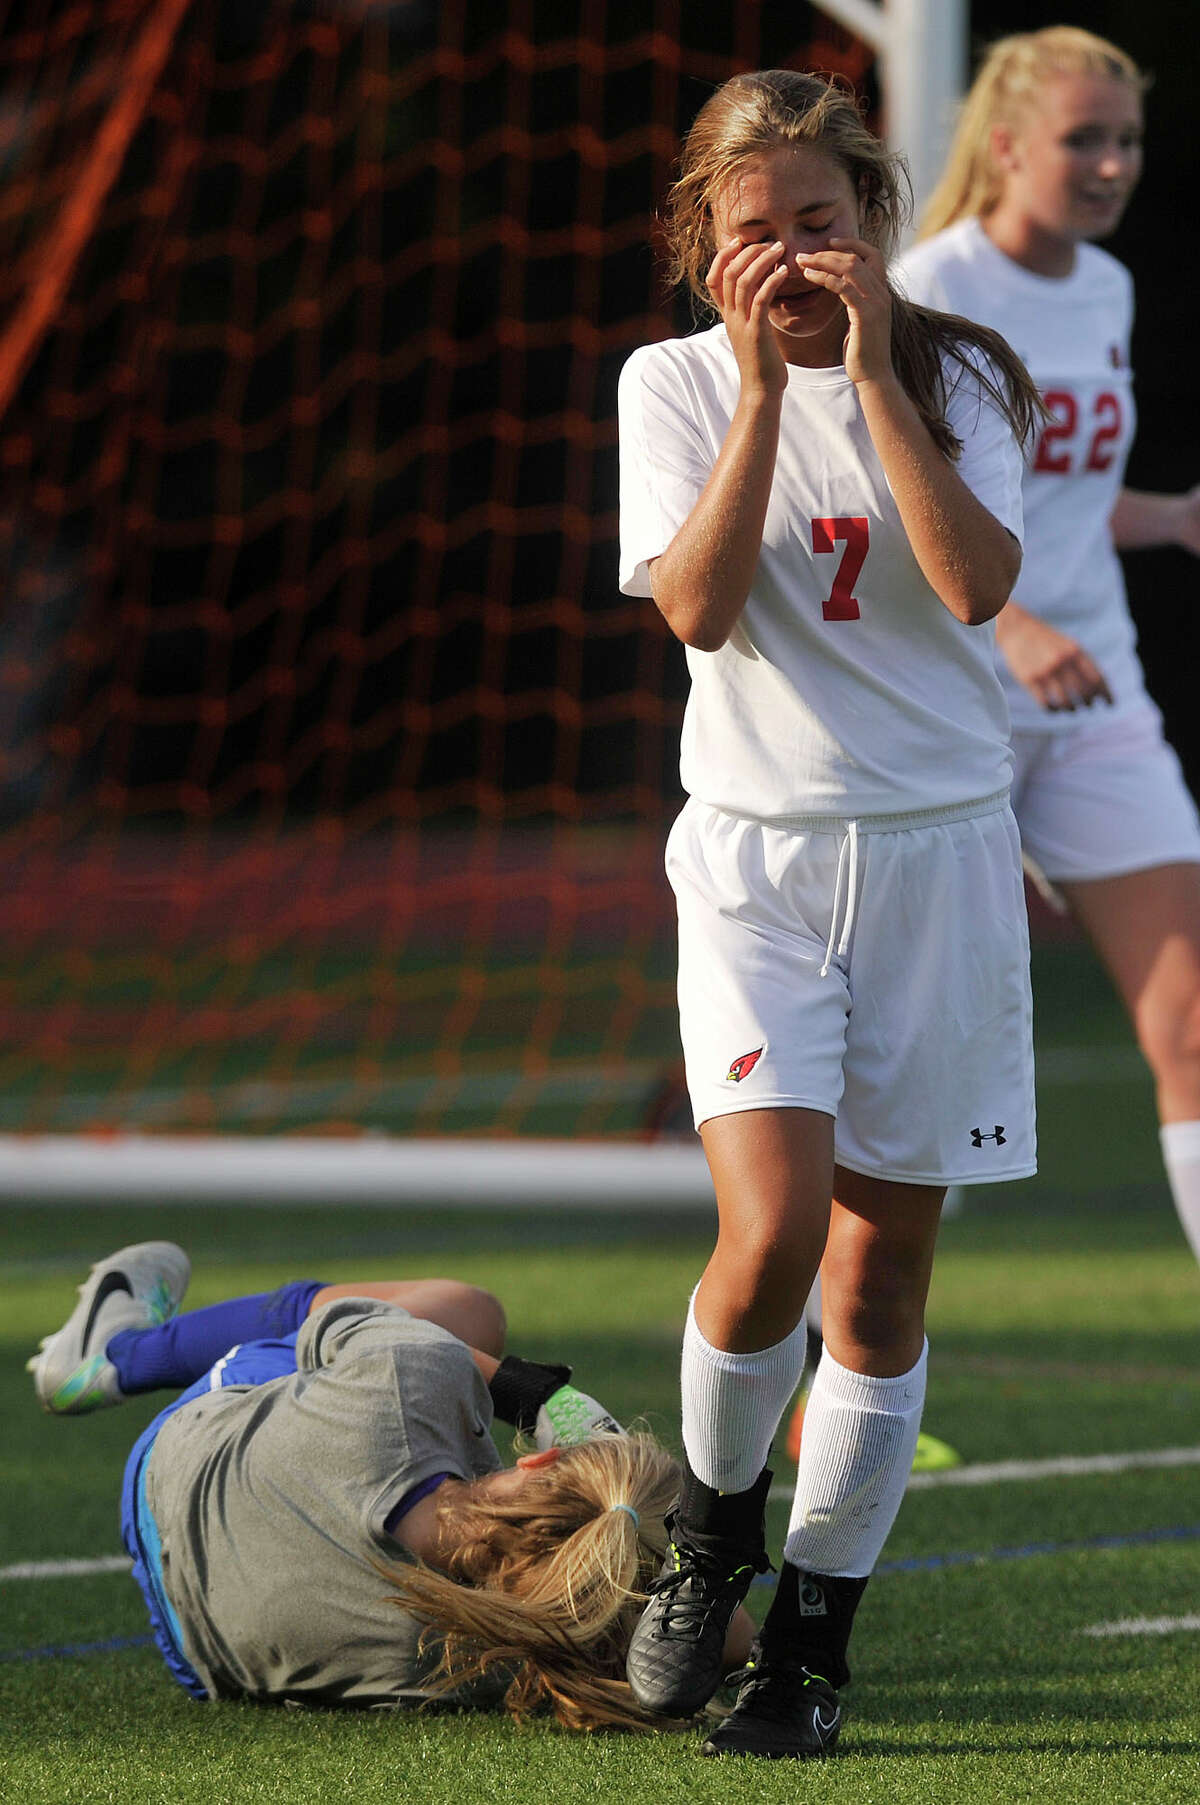 Greenwich's Anna Giannuzzi reacts after Darien goalie Kate Fiore strips her of the ball during their soccer game at Greenwich High School in Greenwich, Conn., on Wednesday, Sept. 10, 2014. Darien won, 3-0.